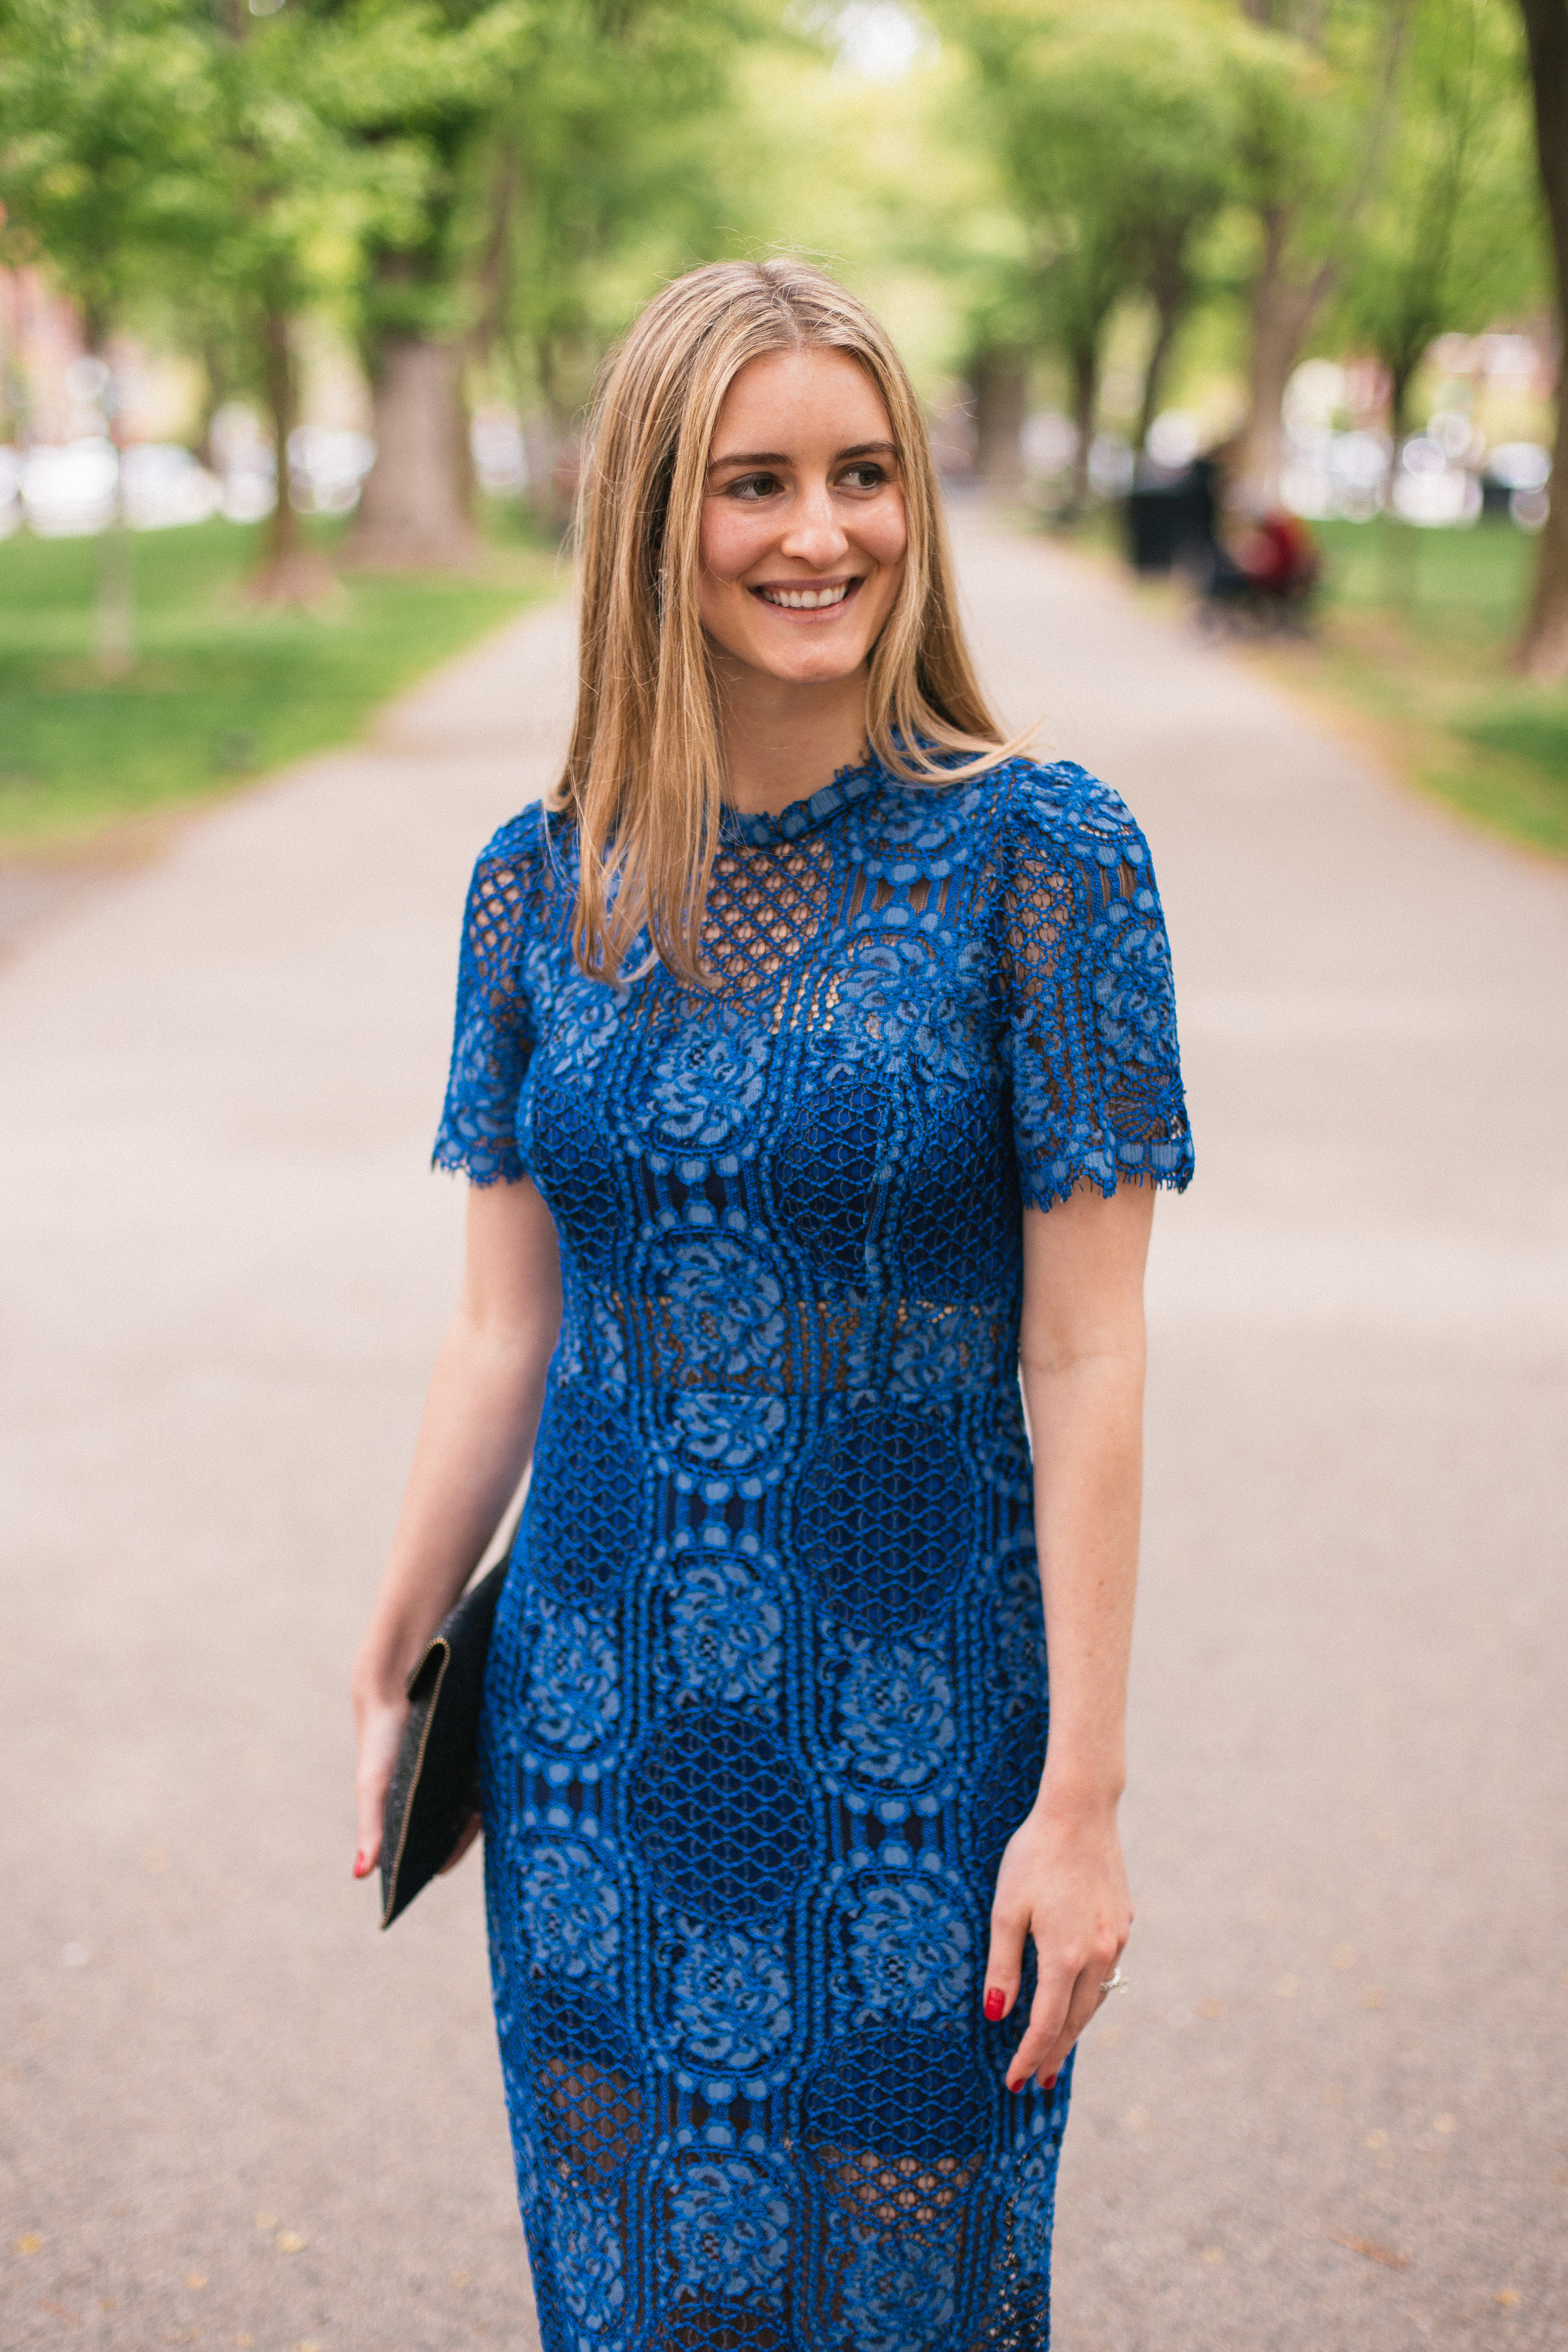 Lindsay Shores in Blue Lace Dress